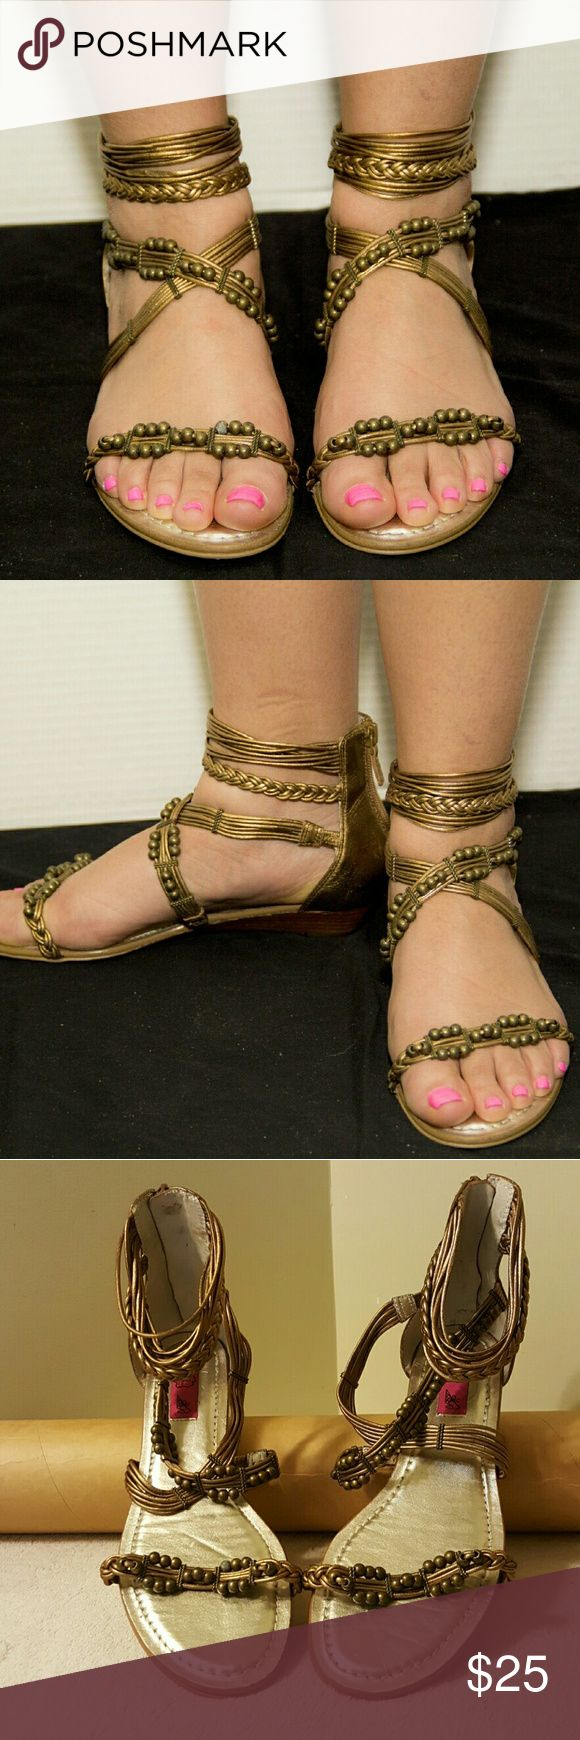 """Chi by Felchi  """"Tricia""""  leather gladiator sandals These are """"Coppertone"""" studded and also braided detail sandal. It has a zip up the back with cushioned soles. Cute and comfy. NWOT Chi by Felchi Shoes Sandals"""